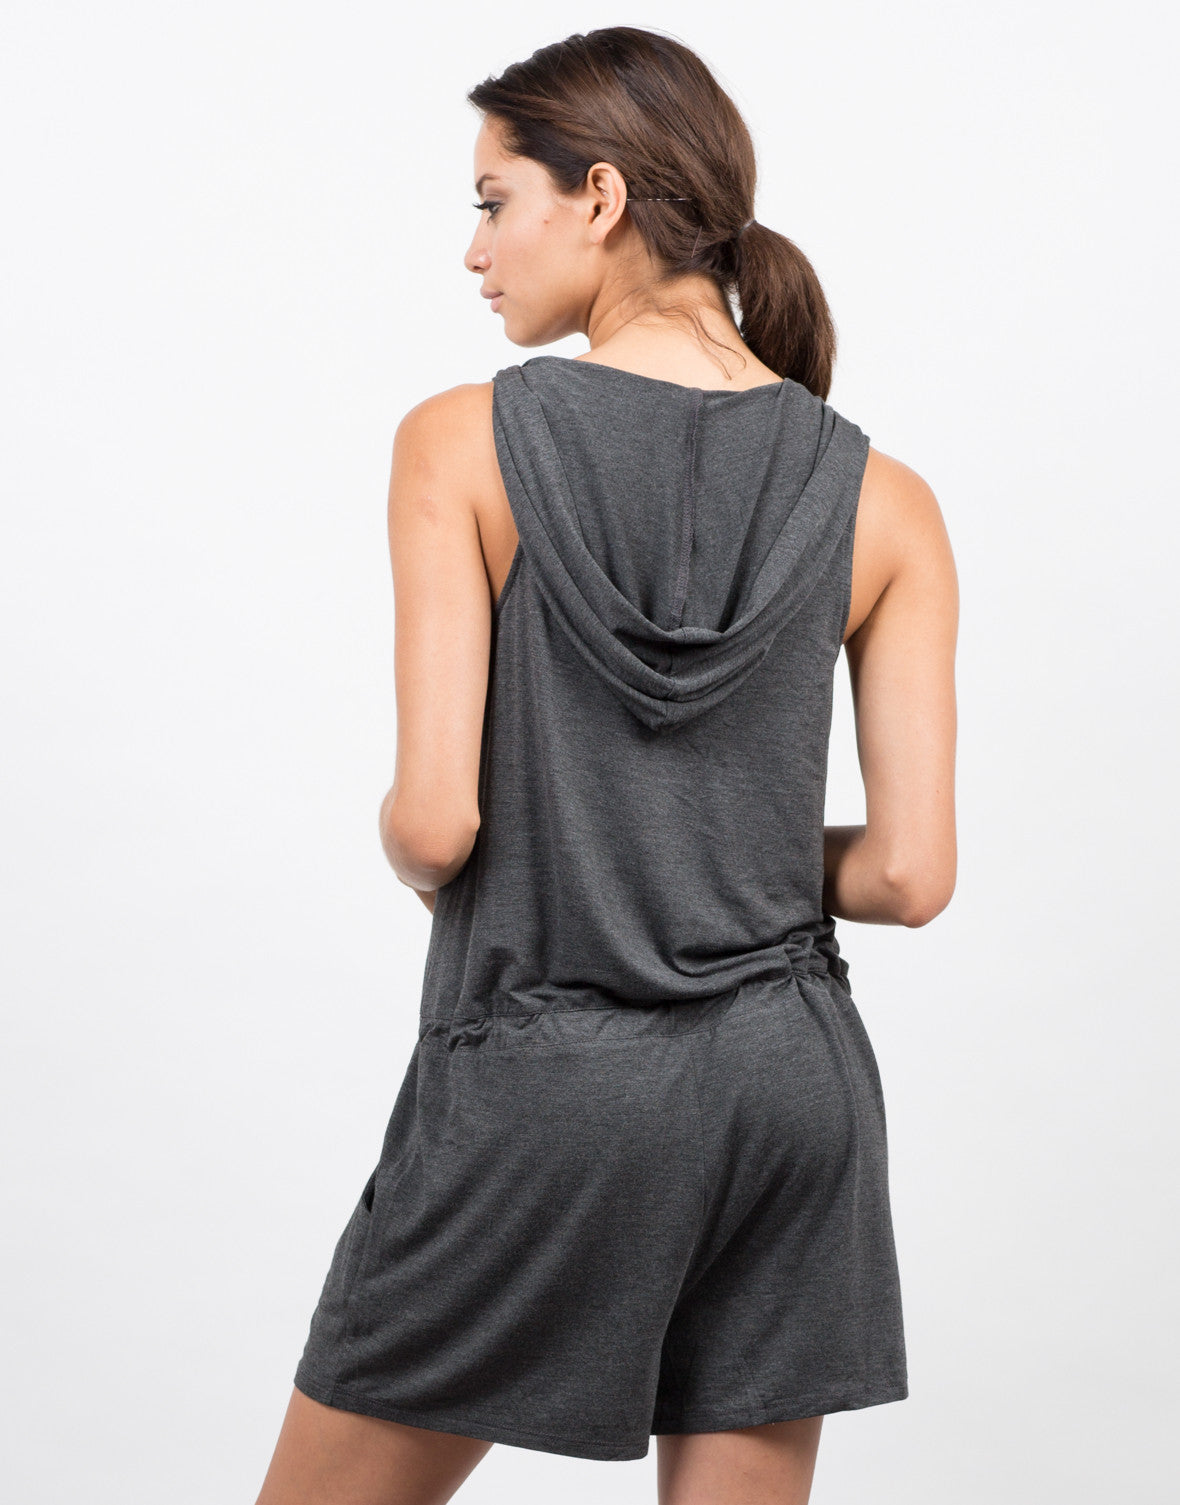 Back View of Zipper Front Hooded Romper